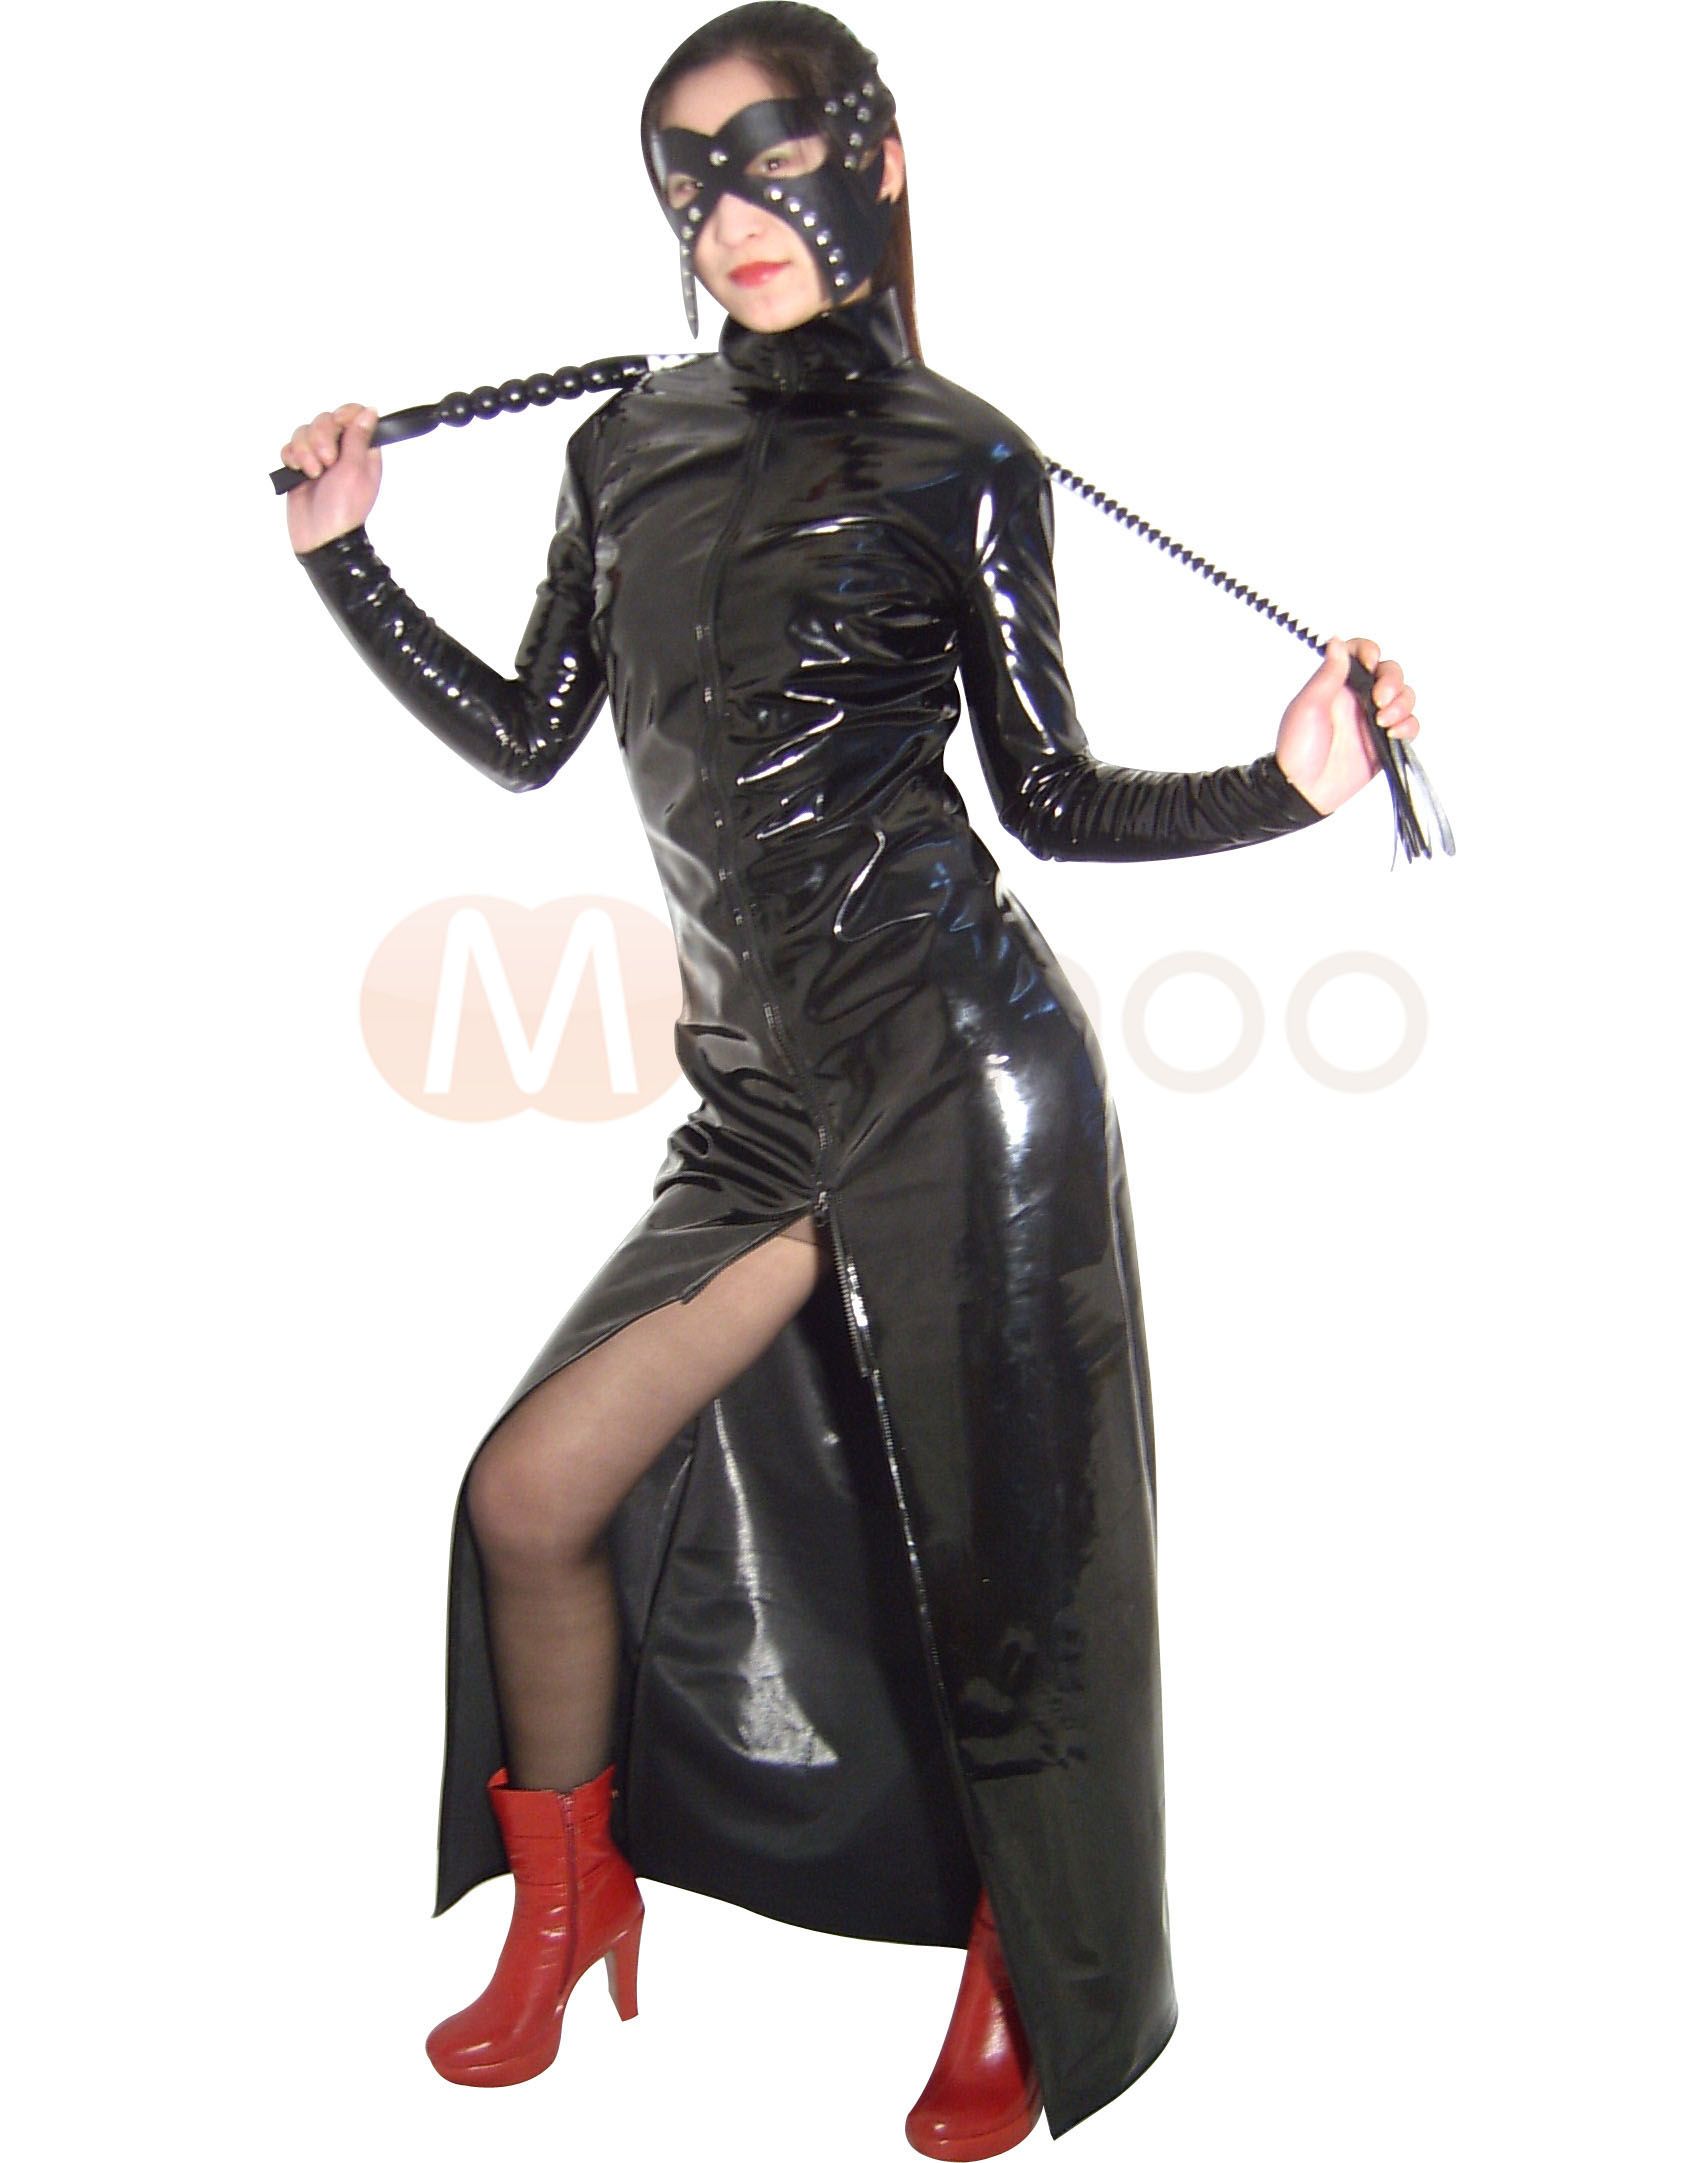 Front-Open-Sexy-Shiny-PVC-Catsuit-Plus-Whip-and-Mask-1329-3.jpg